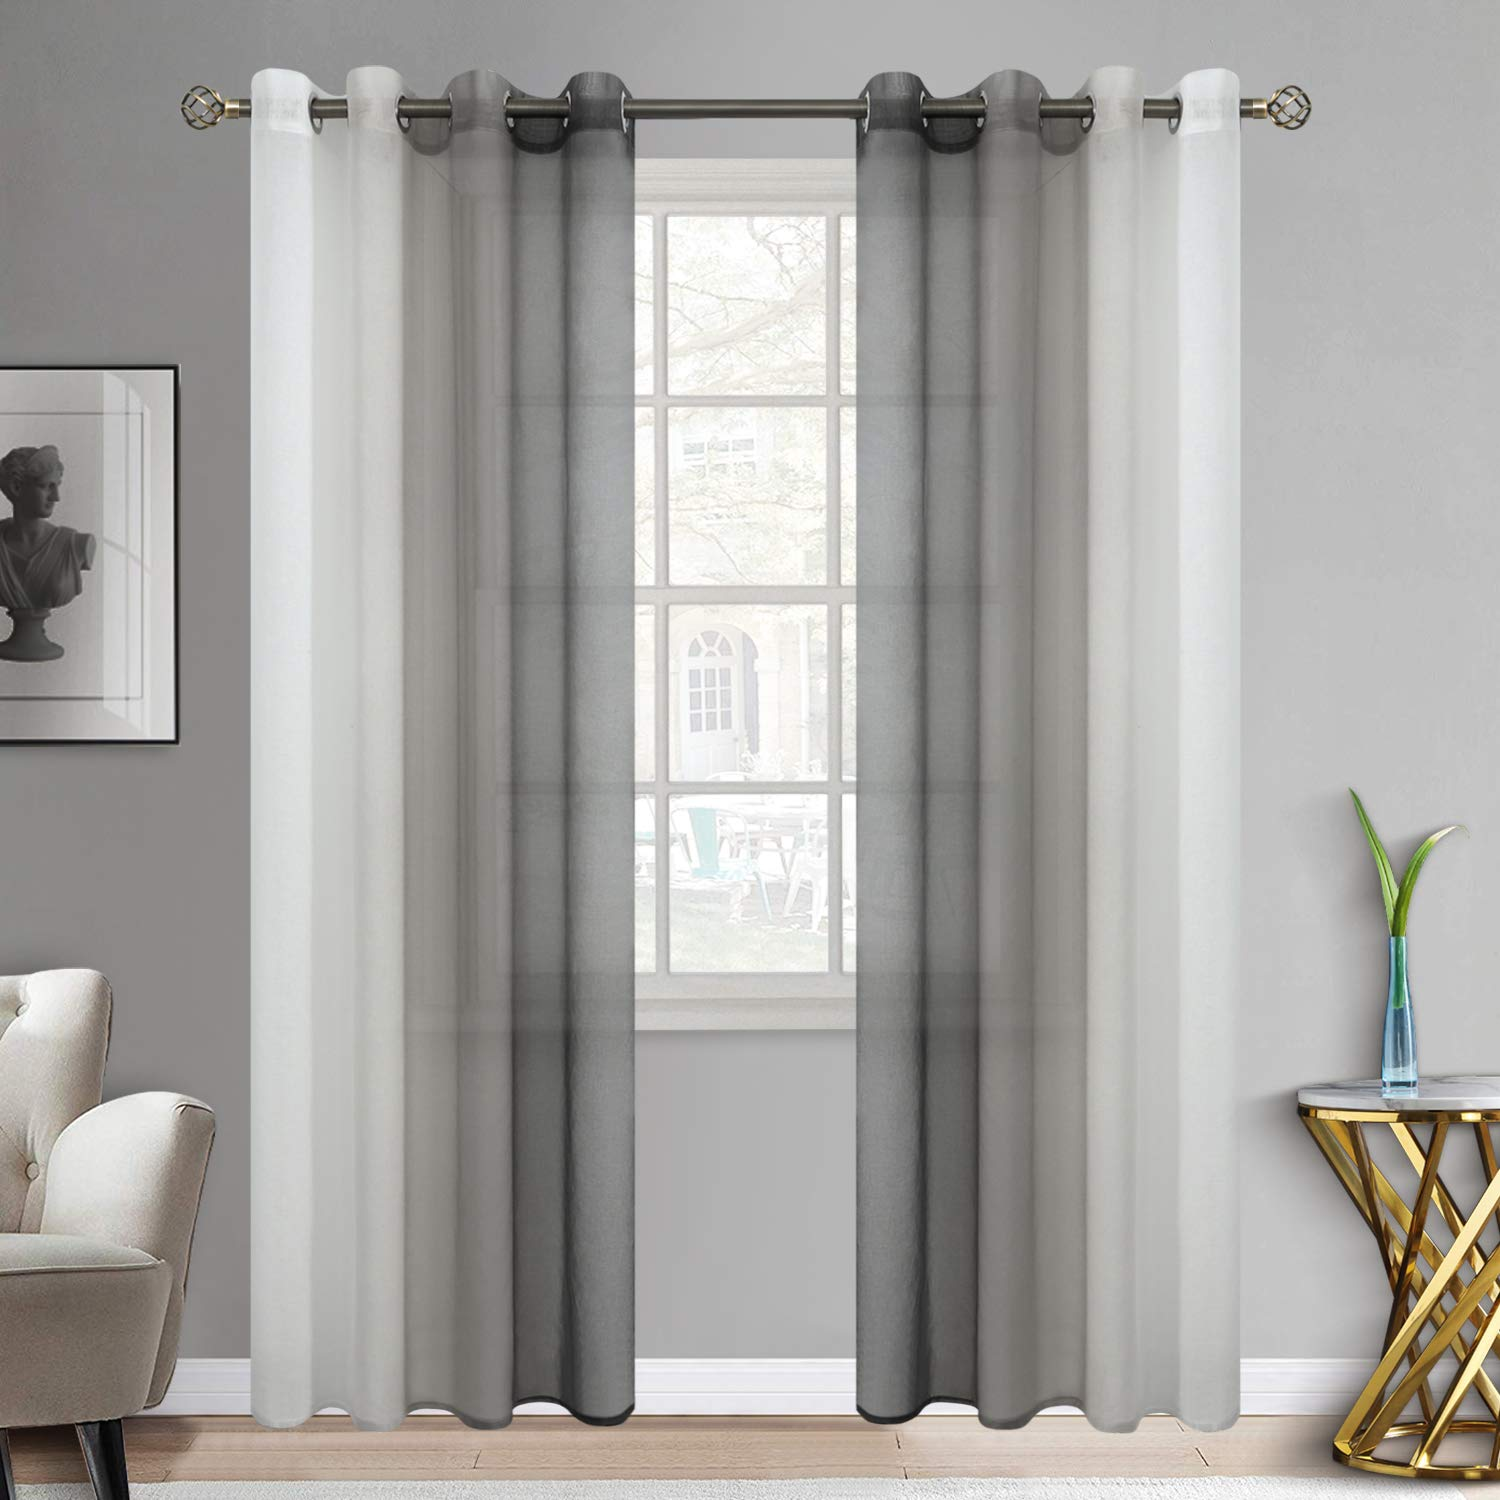 bgment ombre sheer curtains faux linen grommet light filtering semi sheer gradient window curtain pair for bedroom living room set of 2 panels each